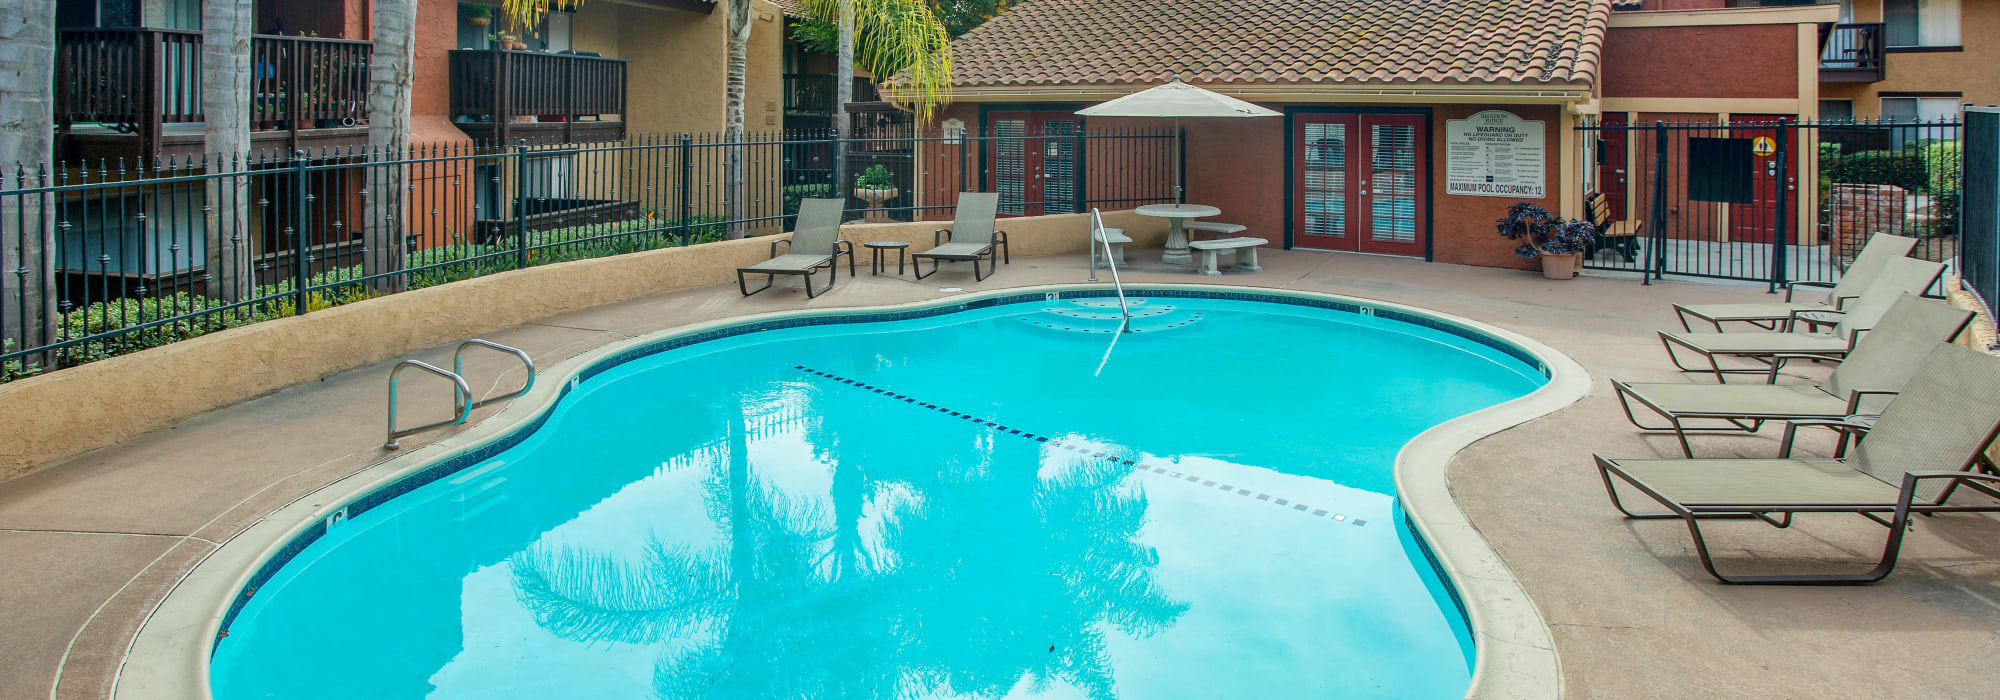 Privacy policy of Shadow Ridge Apartments in Oceanside, California